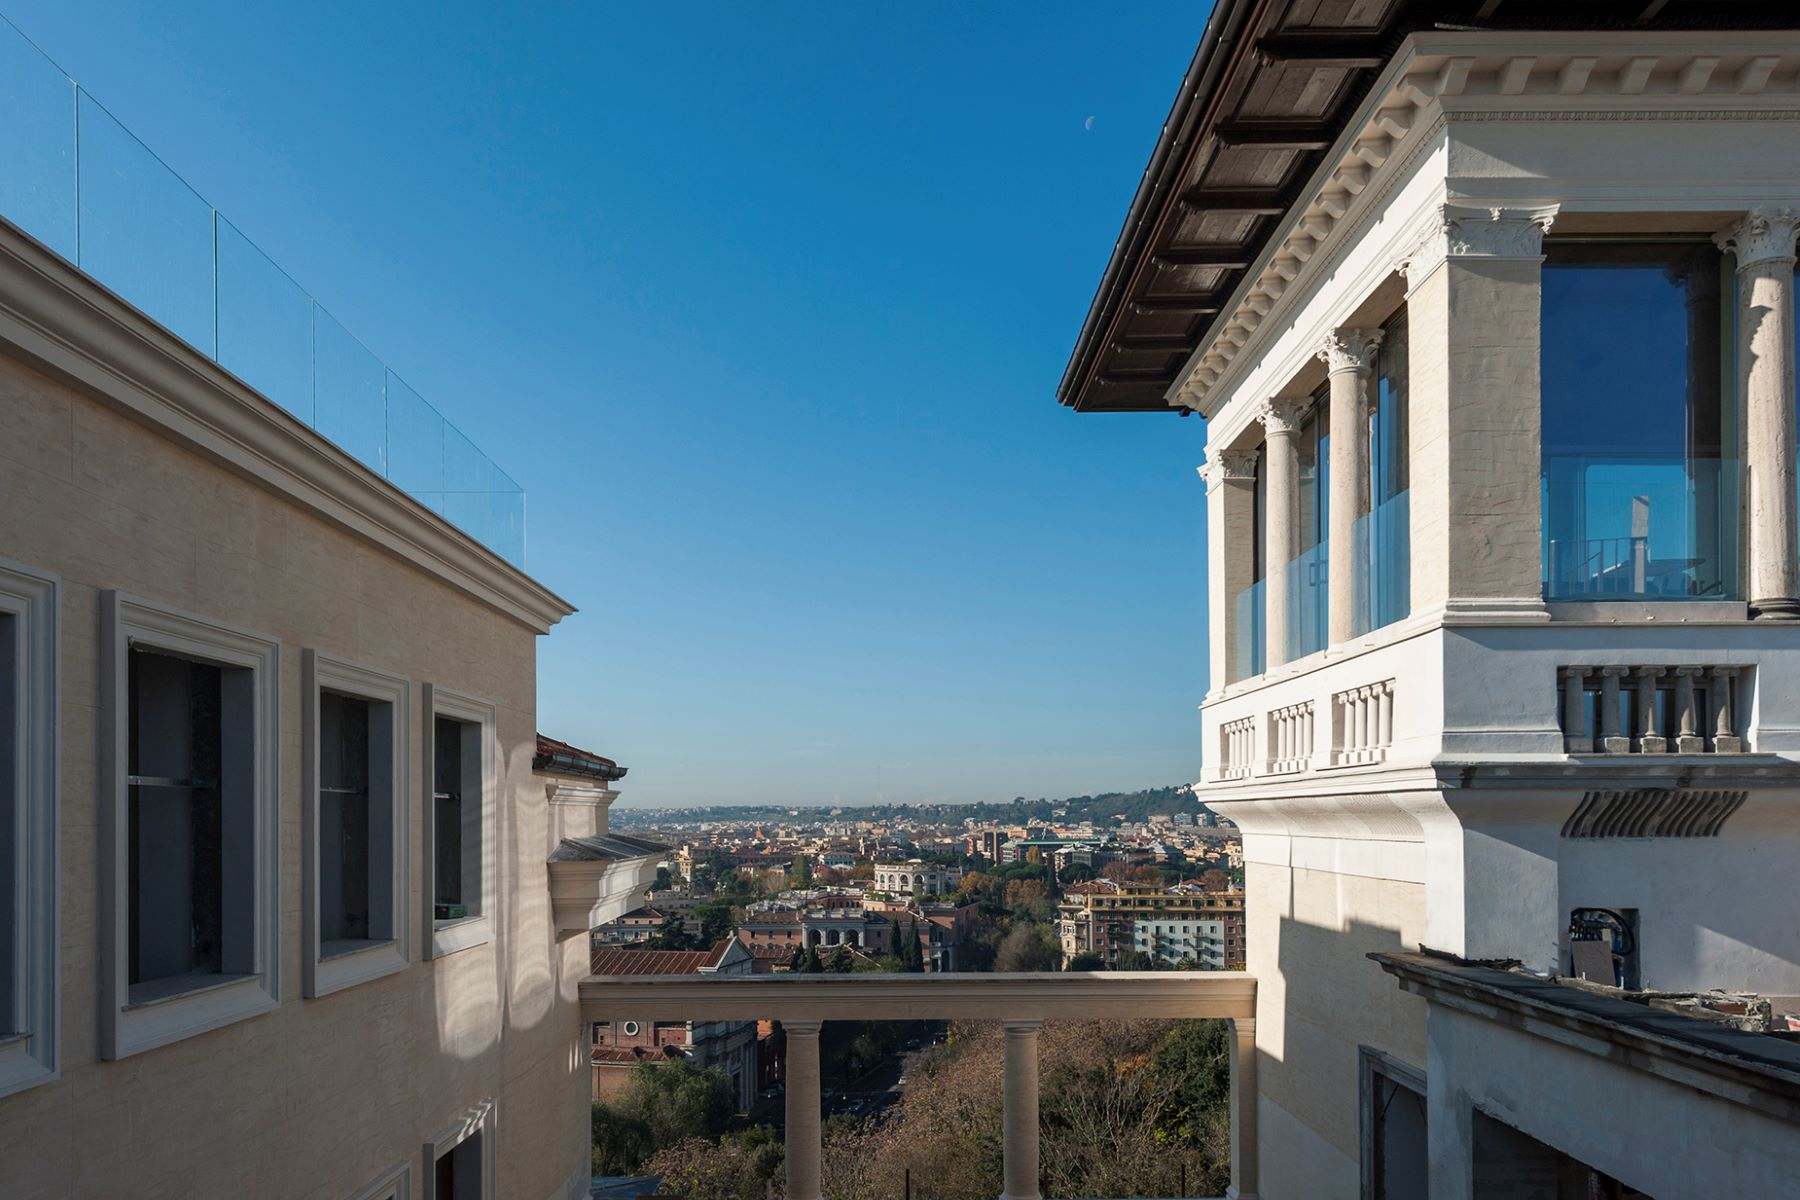 Additional photo for property listing at Magnifique appartement rénové dans le quartier de Monti Parioli Largo Monti Parioli Rome, Rome 00197 Italie